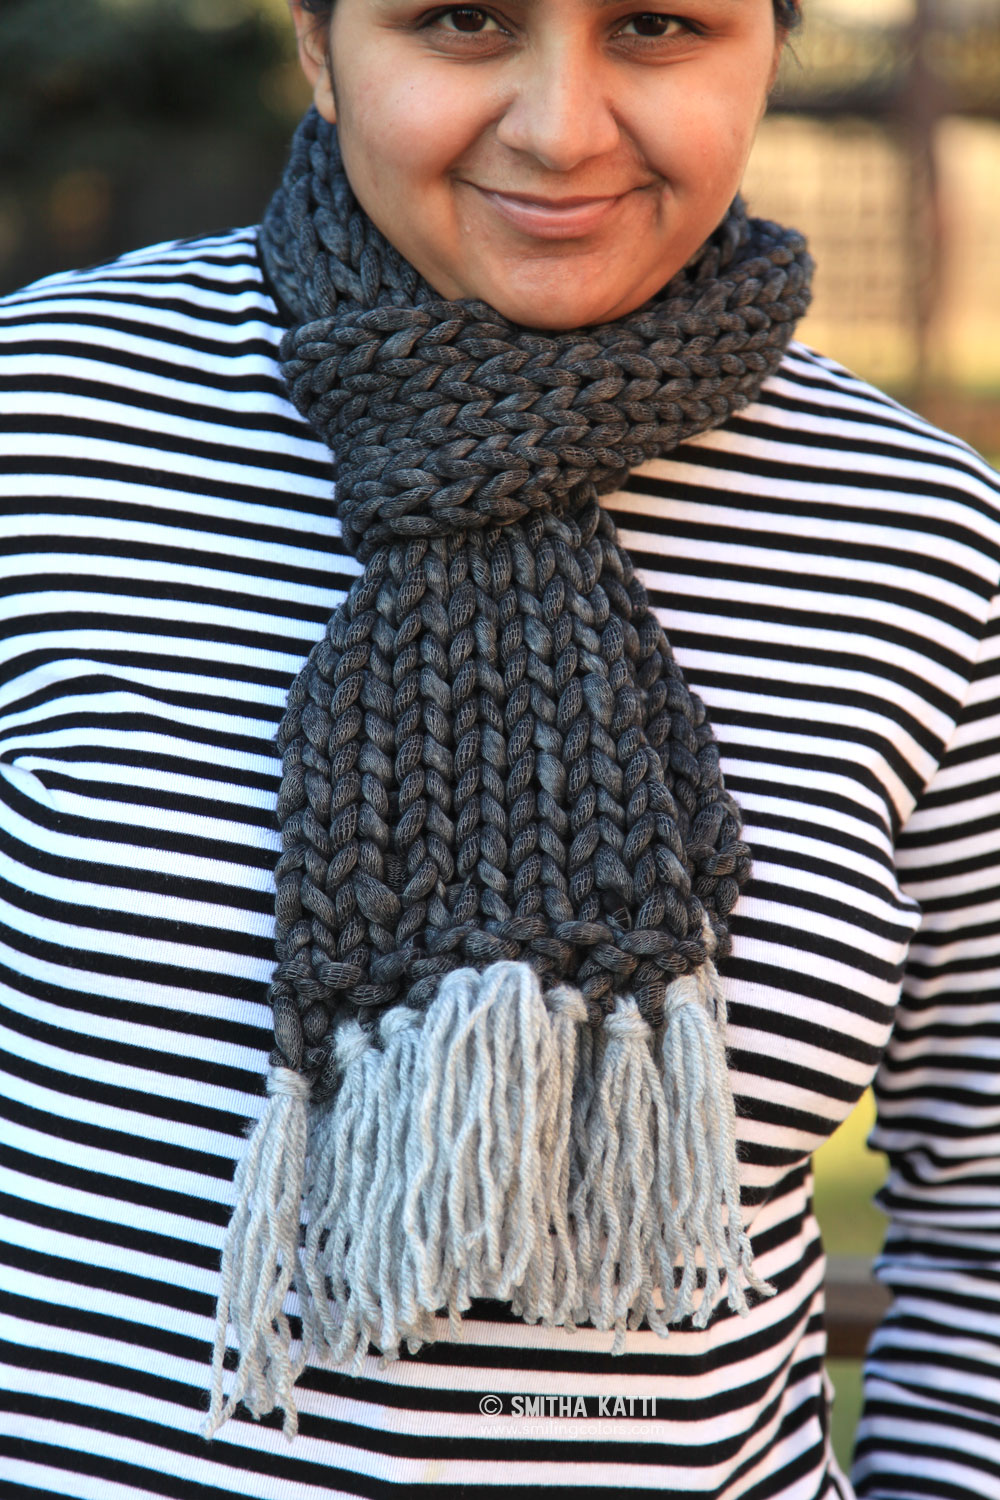 Quick Knit Scarf with Free Pattern - Smitha Katti